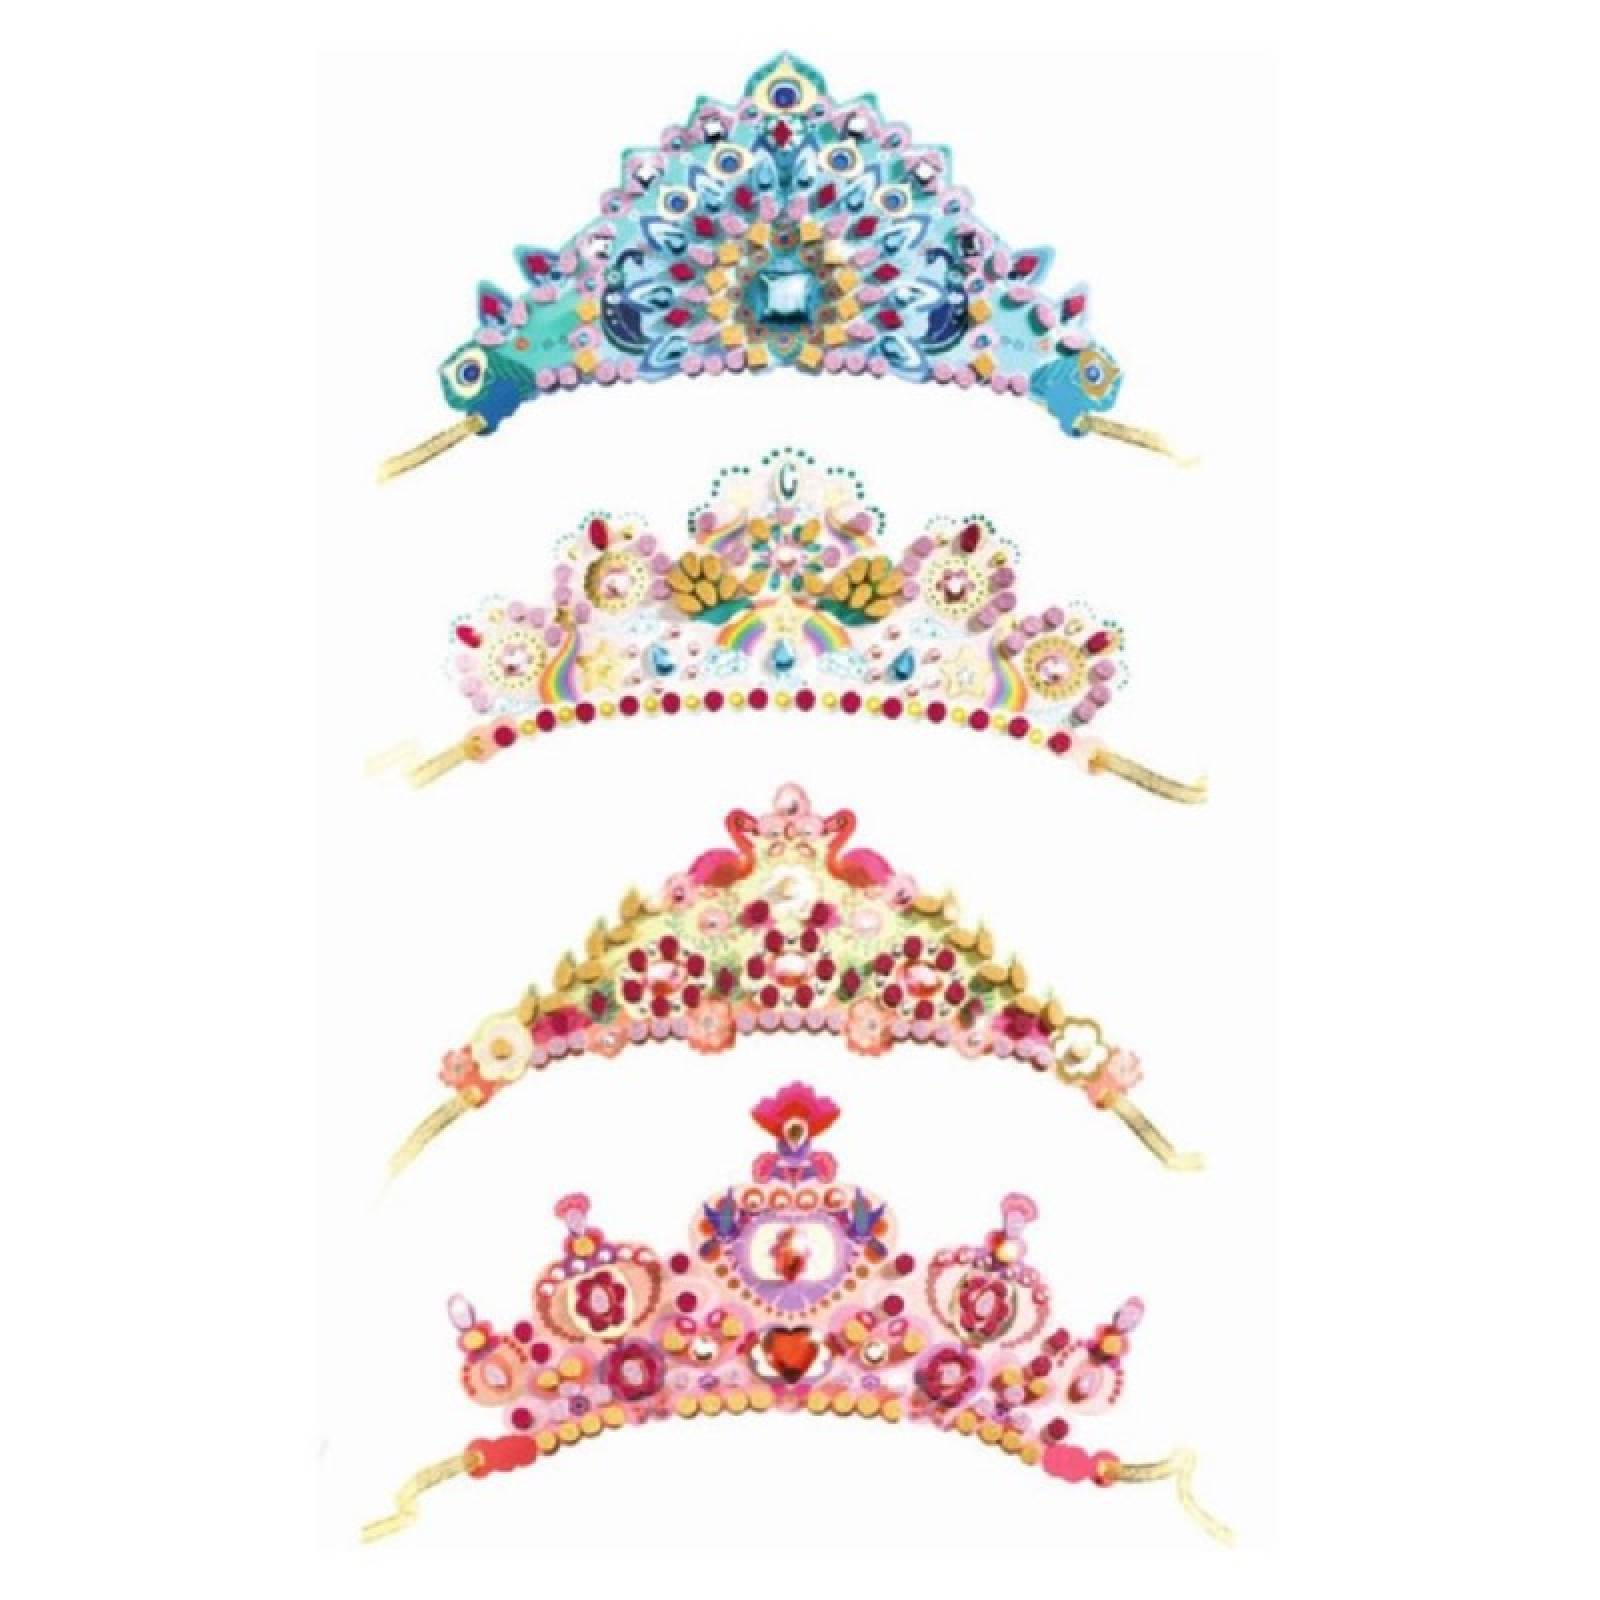 Do It Yourself 4 Mosaic Tiaras To Decorate By Djeco 5+ thumbnails